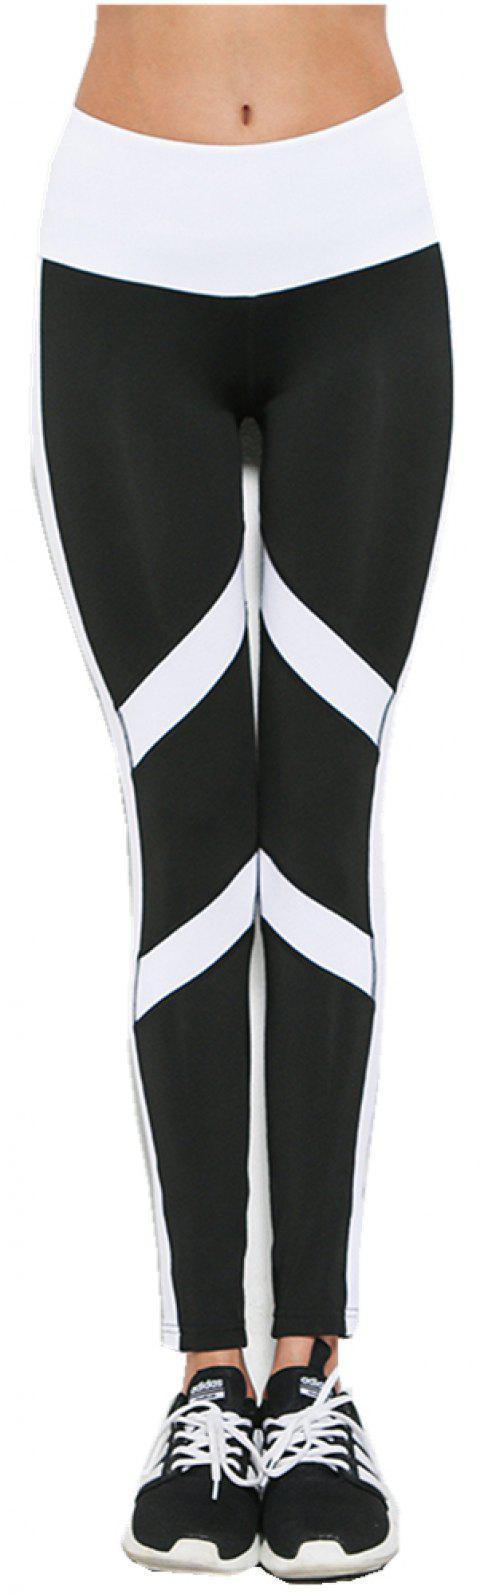 New Printed Striped Sportwear Fitness Yoga Woman Elastic Sexy Slimming Leggings Running Pants - BLACK WHITE M